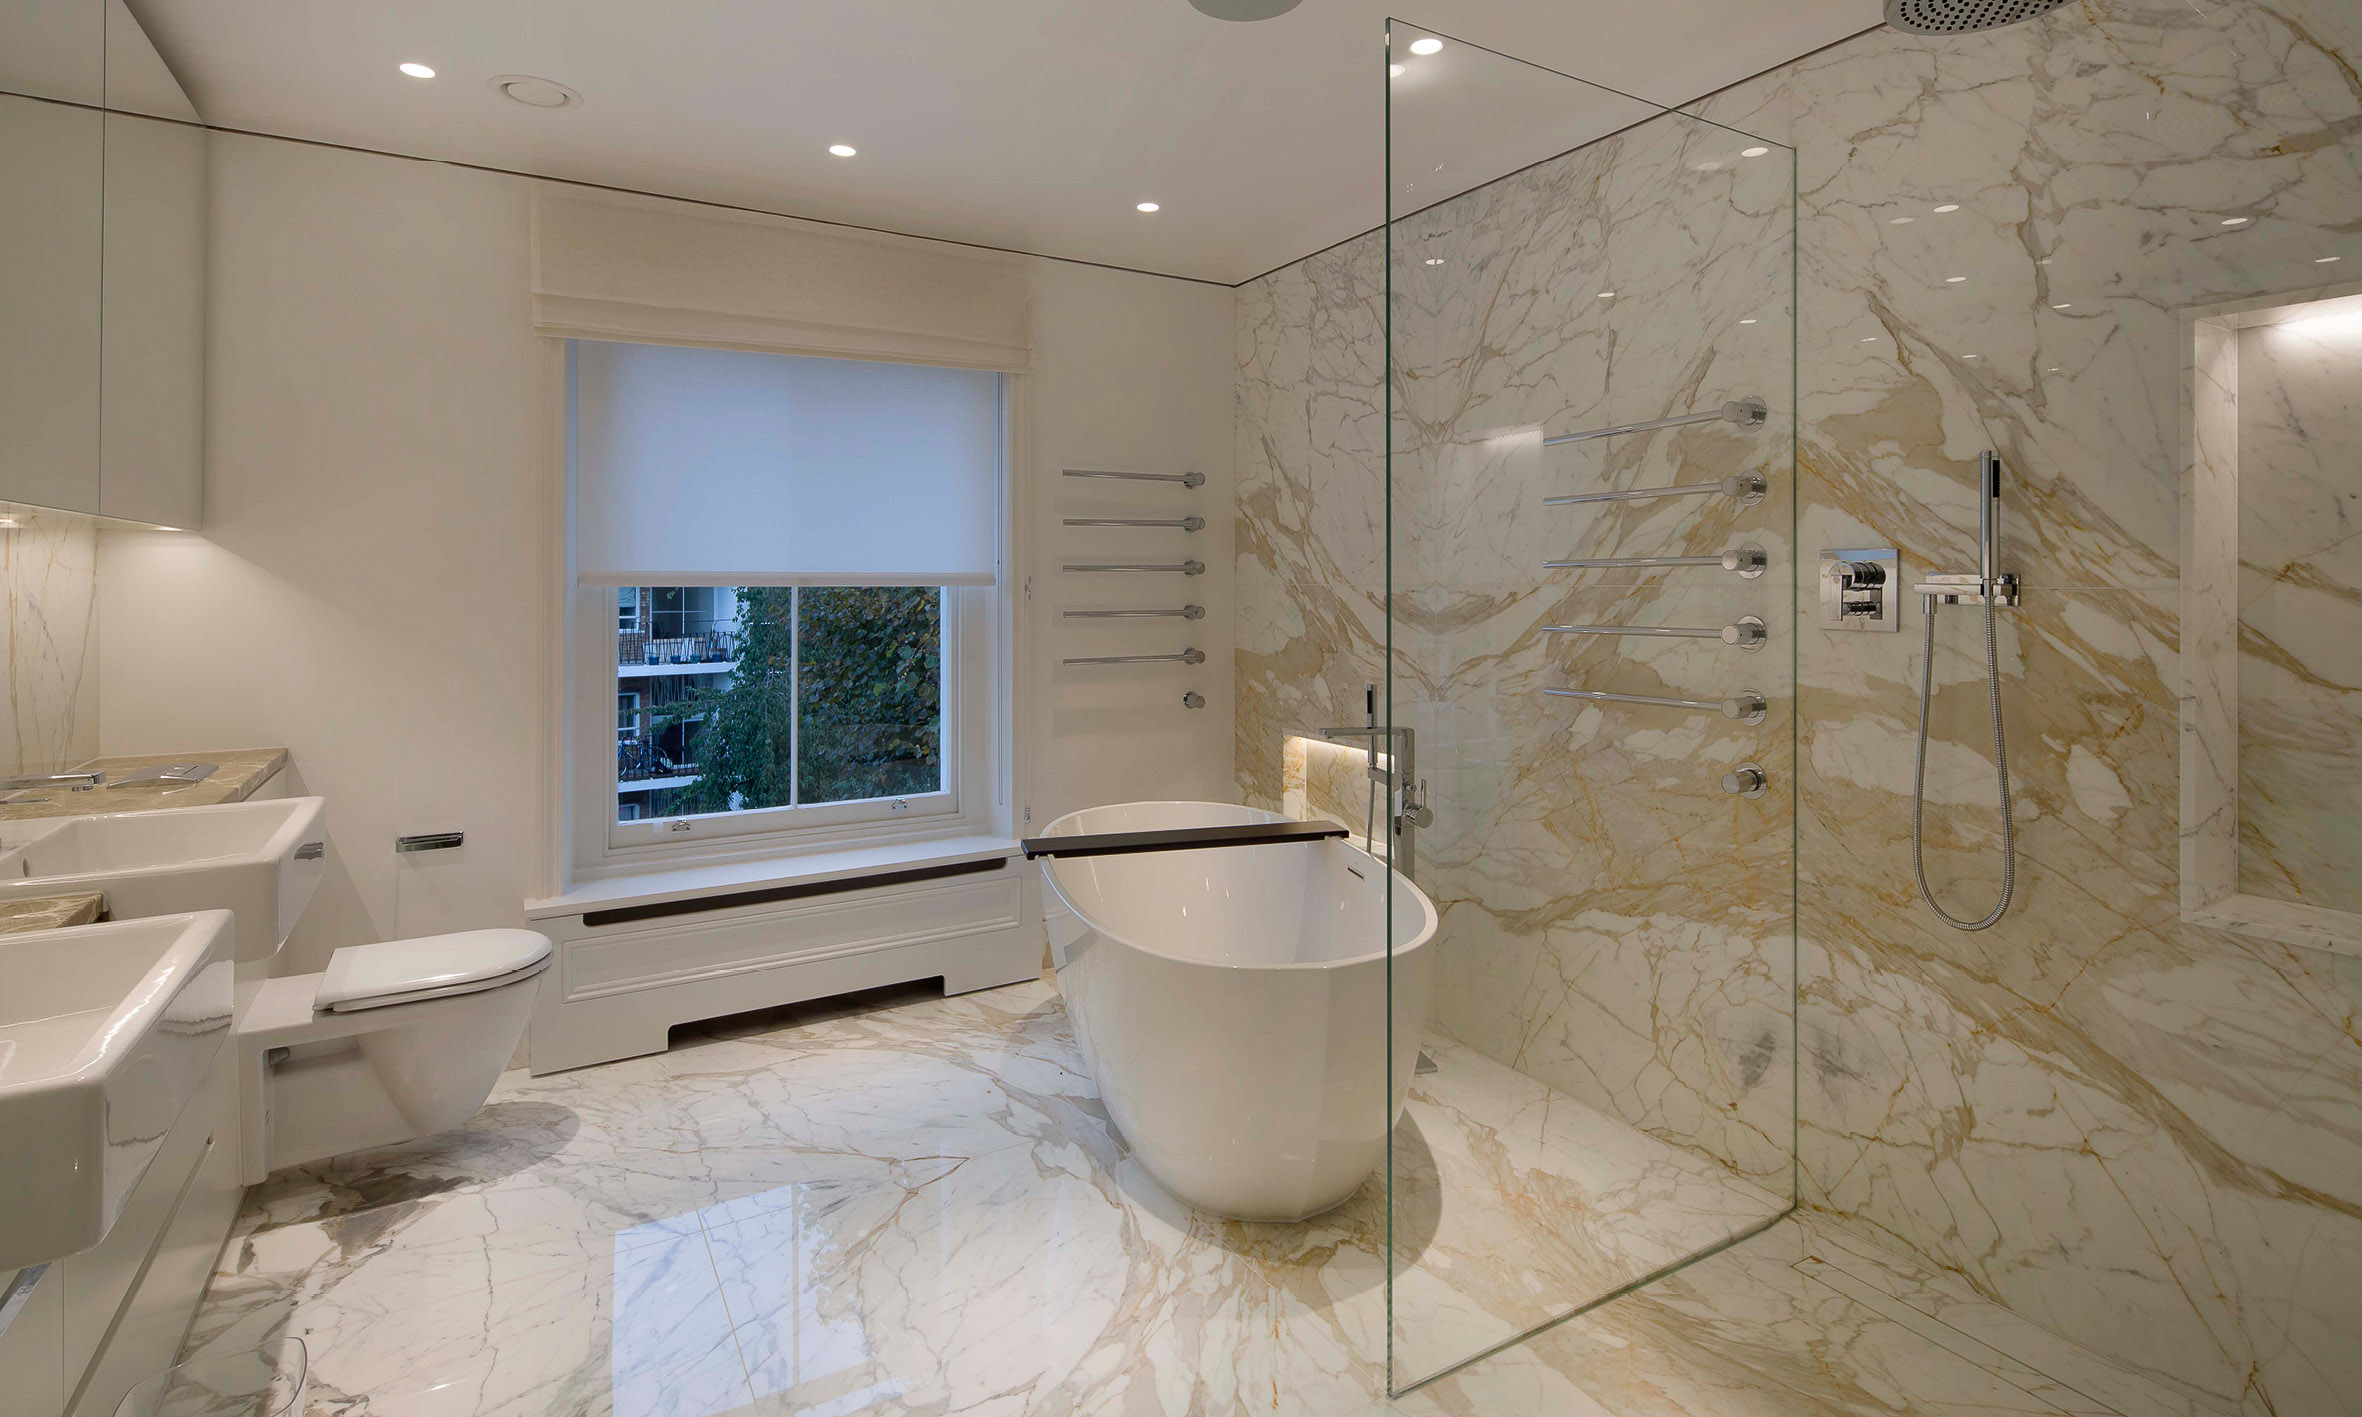 The second bathroom with feature marble wall and floor